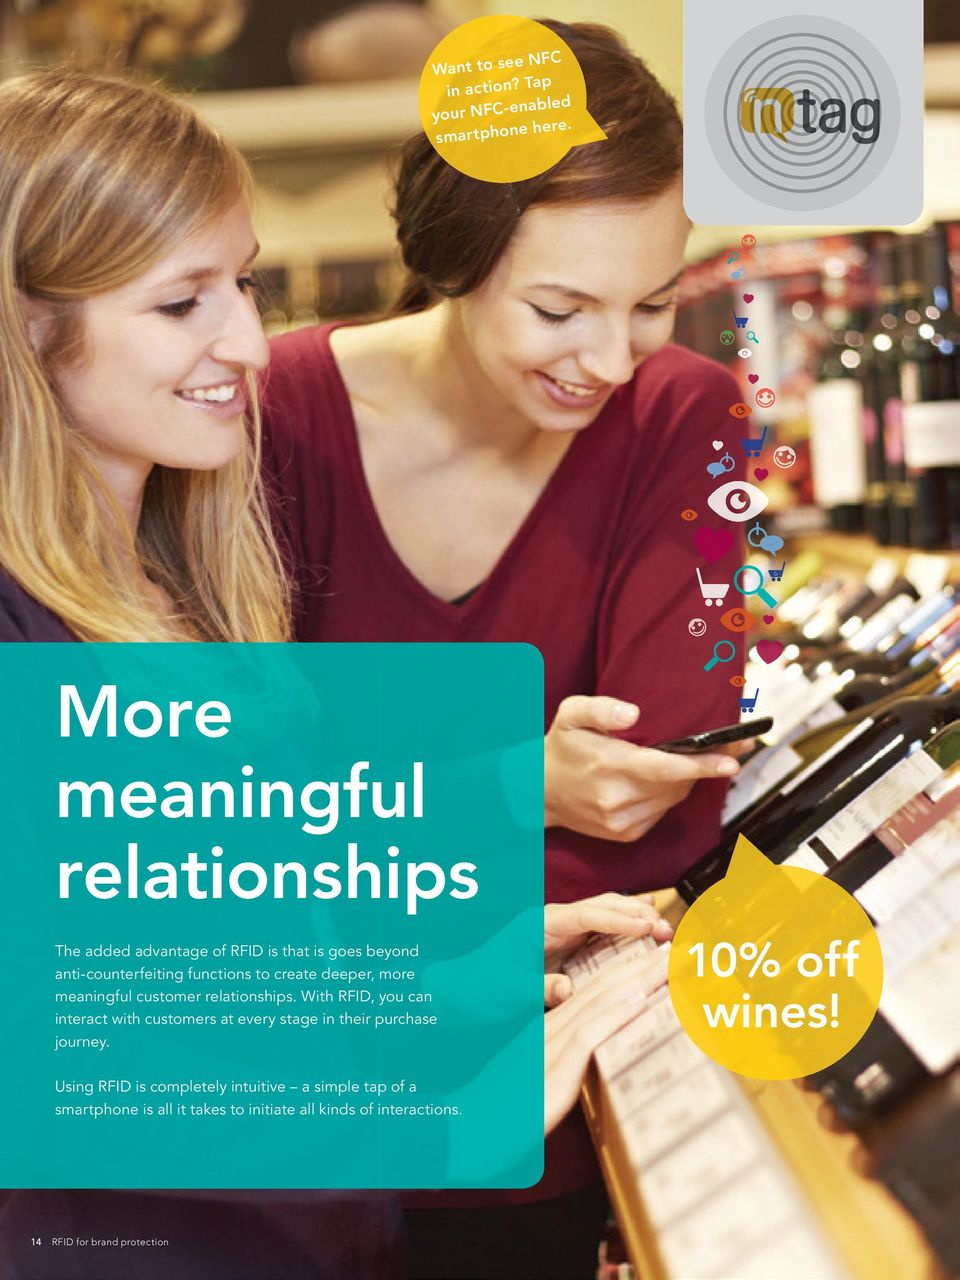 deeper, more meaningful customer relationships.